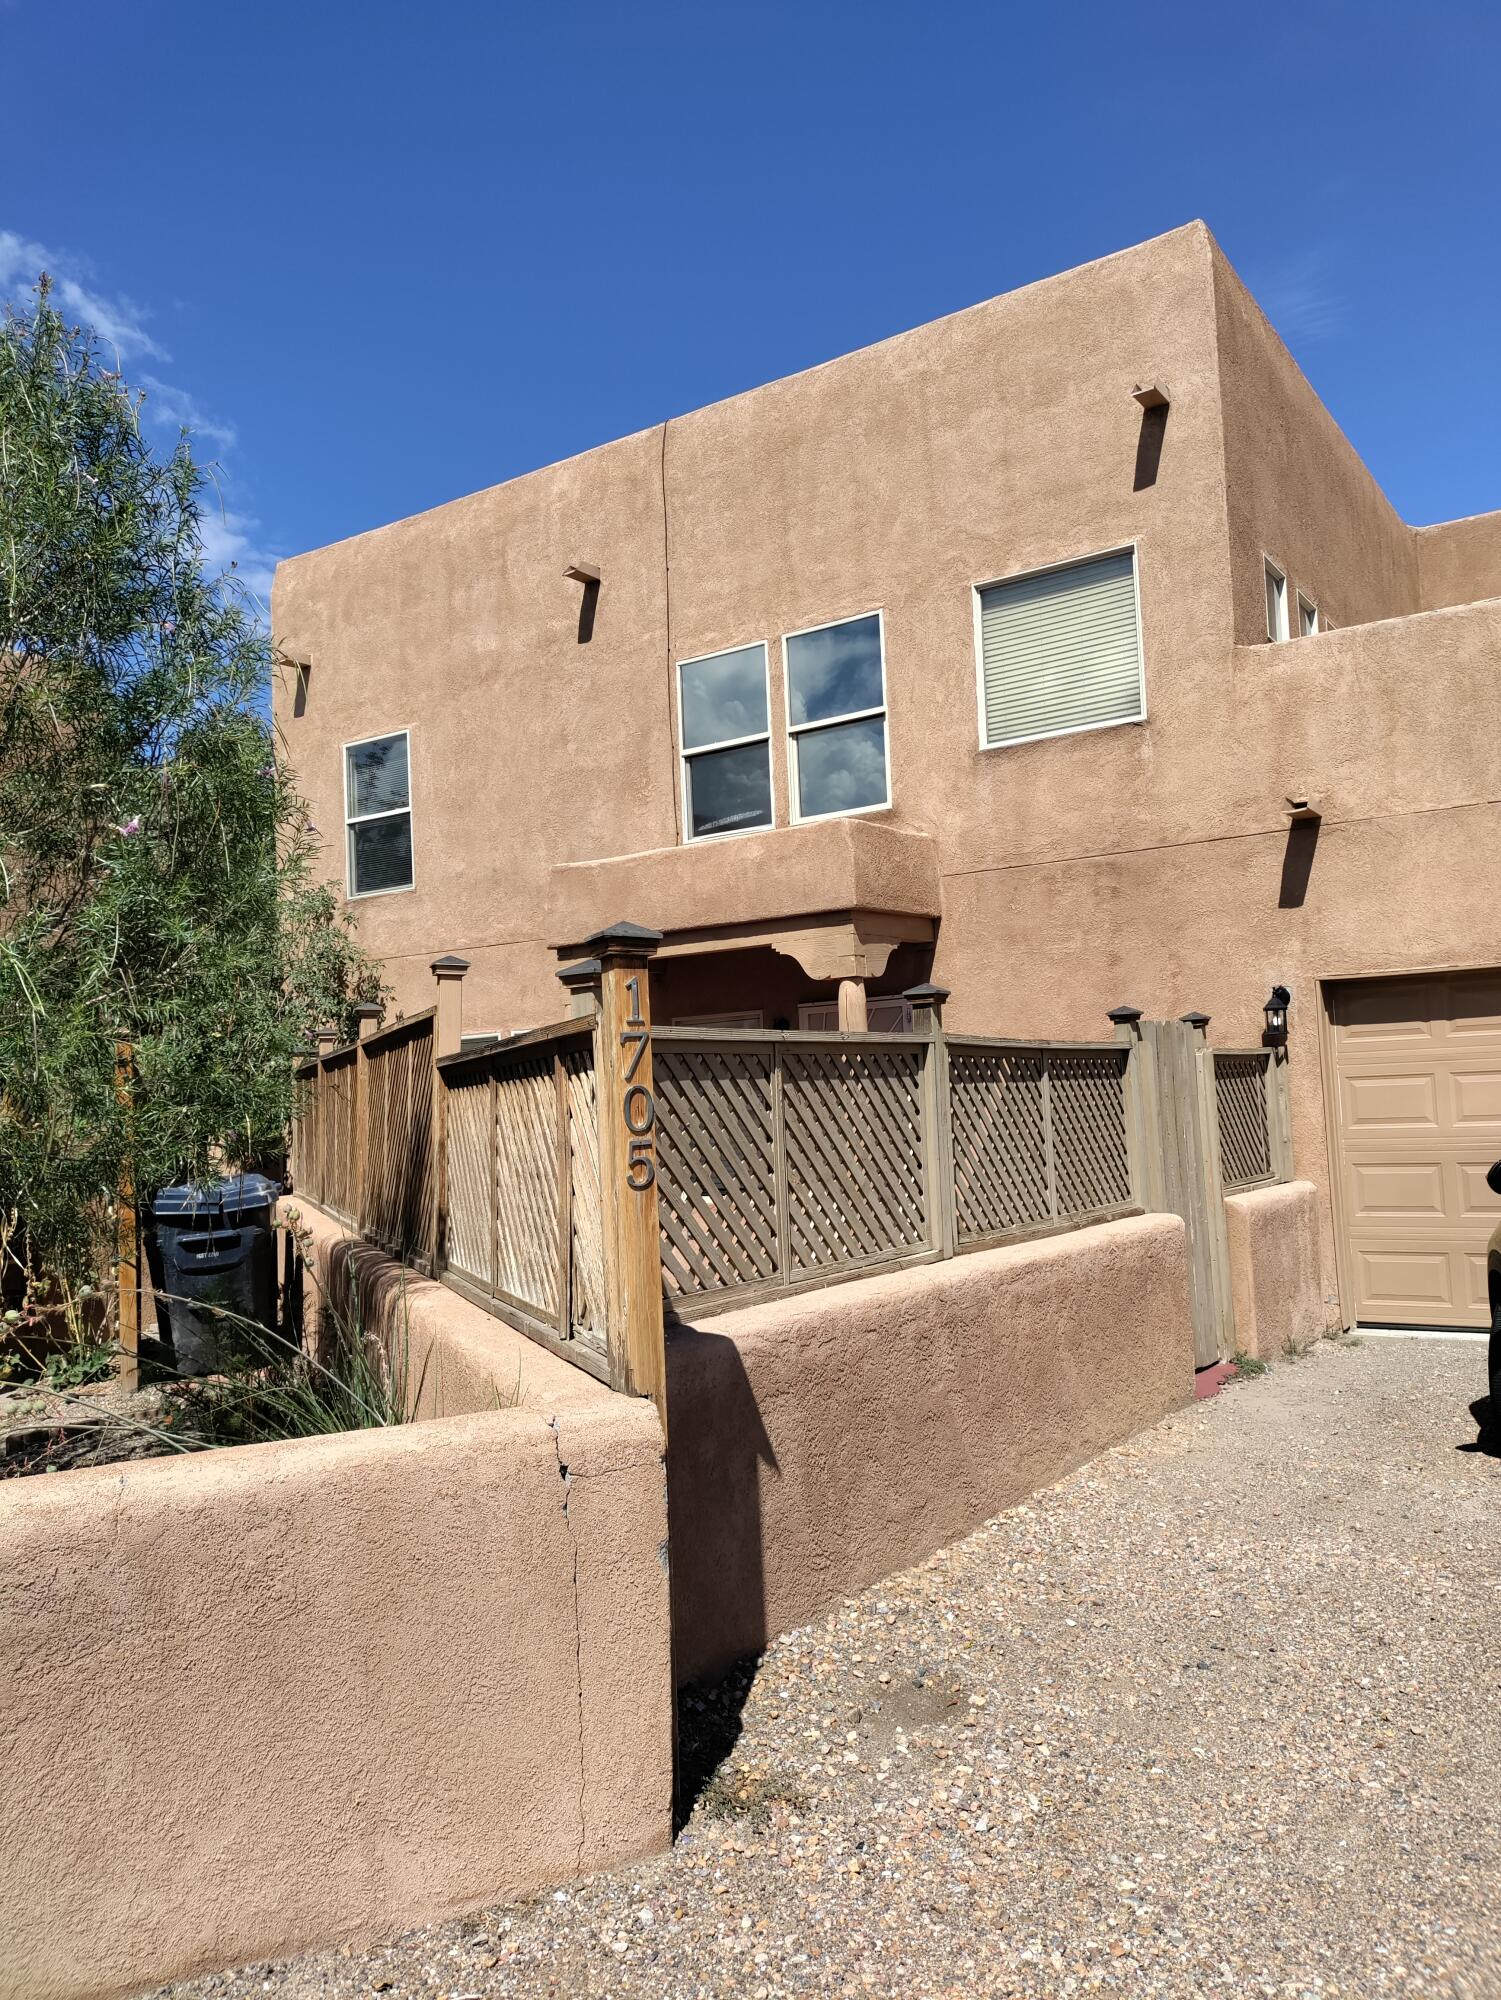 Wonderful 2 story Townhome nestled in the back of quiet North Valley Los Jardines Subdivision. Refrigerated Air, No Carpet, Laminate and Tile floors, Kiva style Fireplace, Ceiling fans, 3 bedrooms, 2 full baths and 1/2 bath down stairs. Kitchen has an Island  Come take a look .